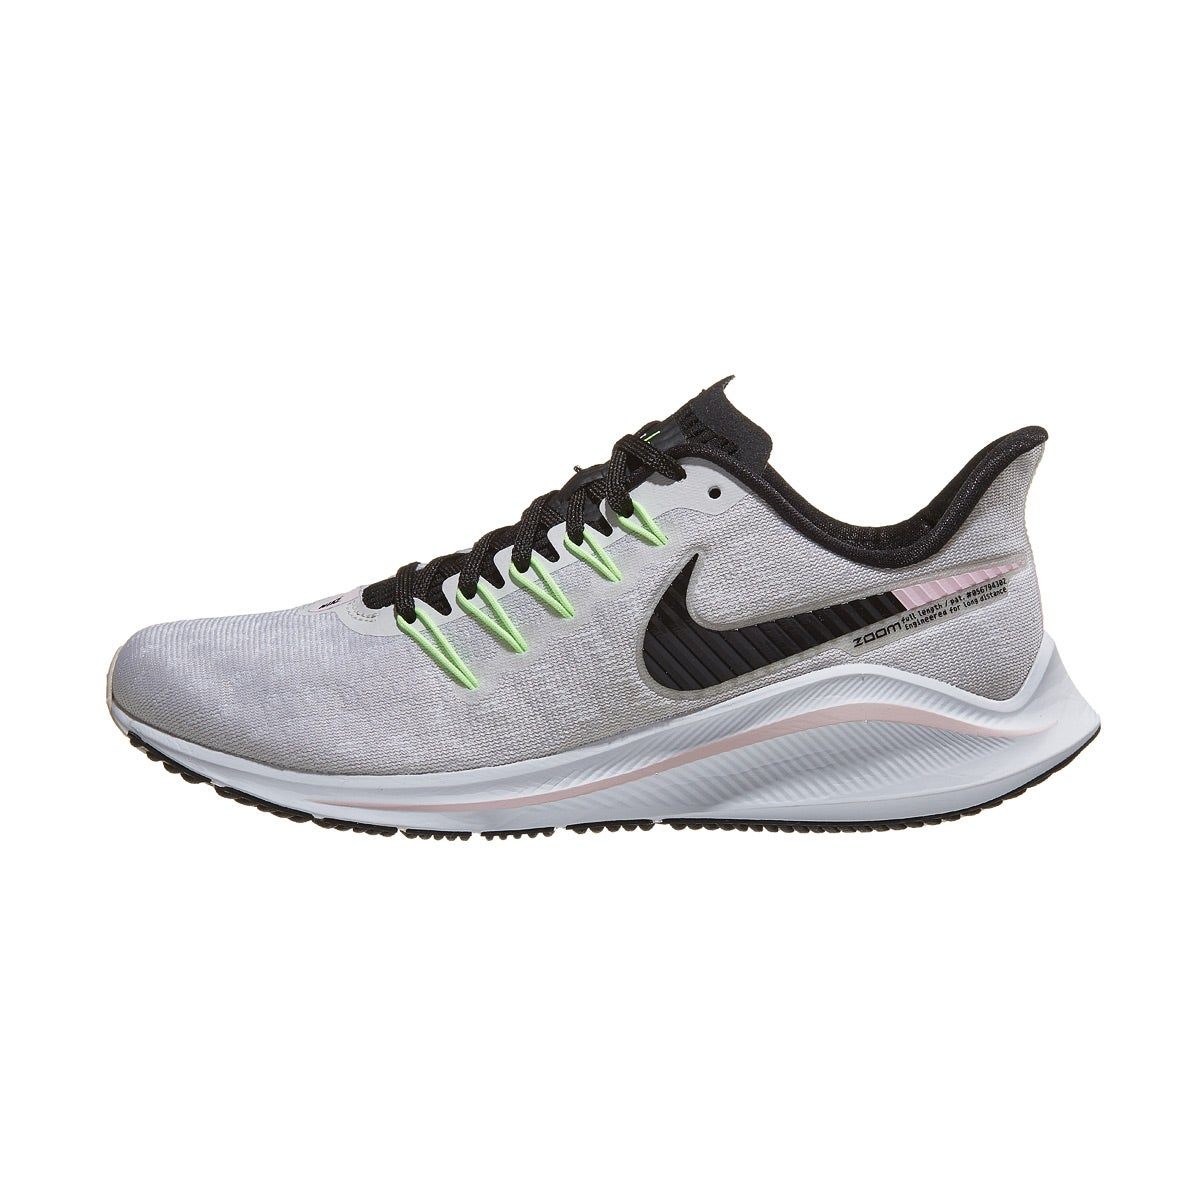 Nike Zoom Vomero 14 Women's Shoes Vast GreyBlack Pin 360